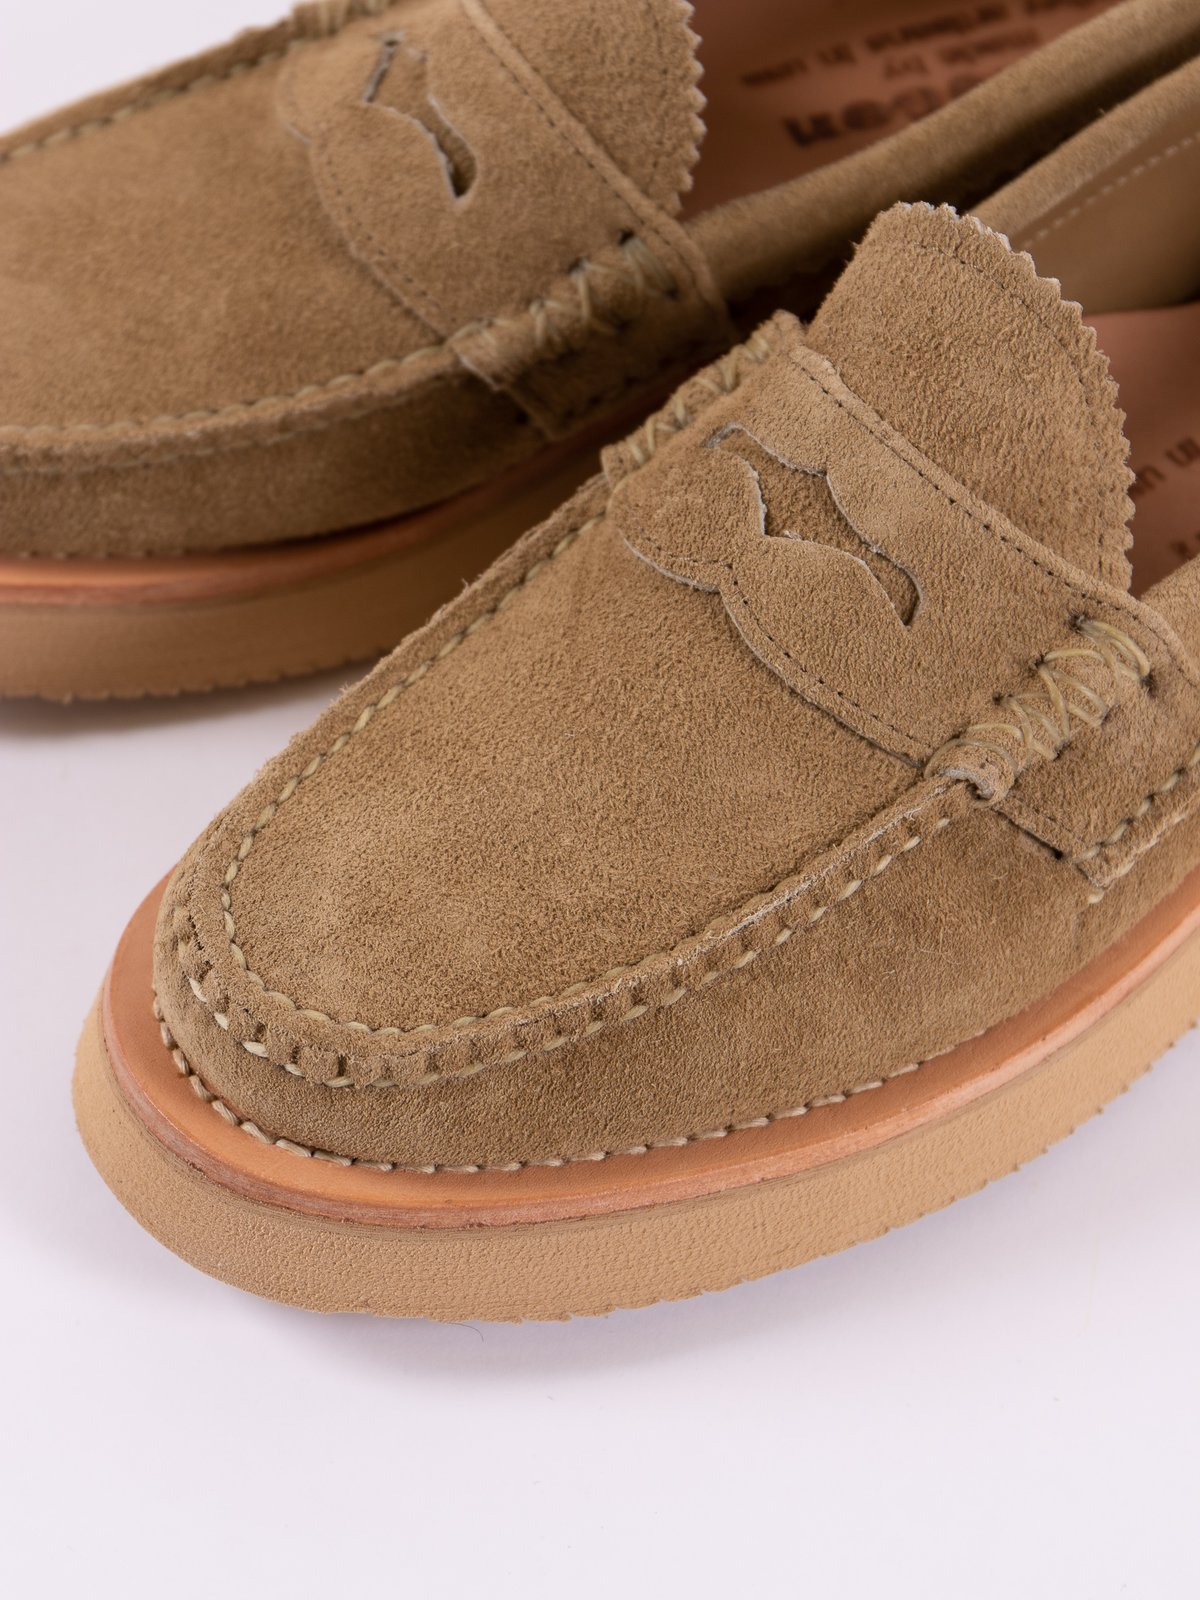 FO Khaki Loafer Shoe Exclusive - Image 3